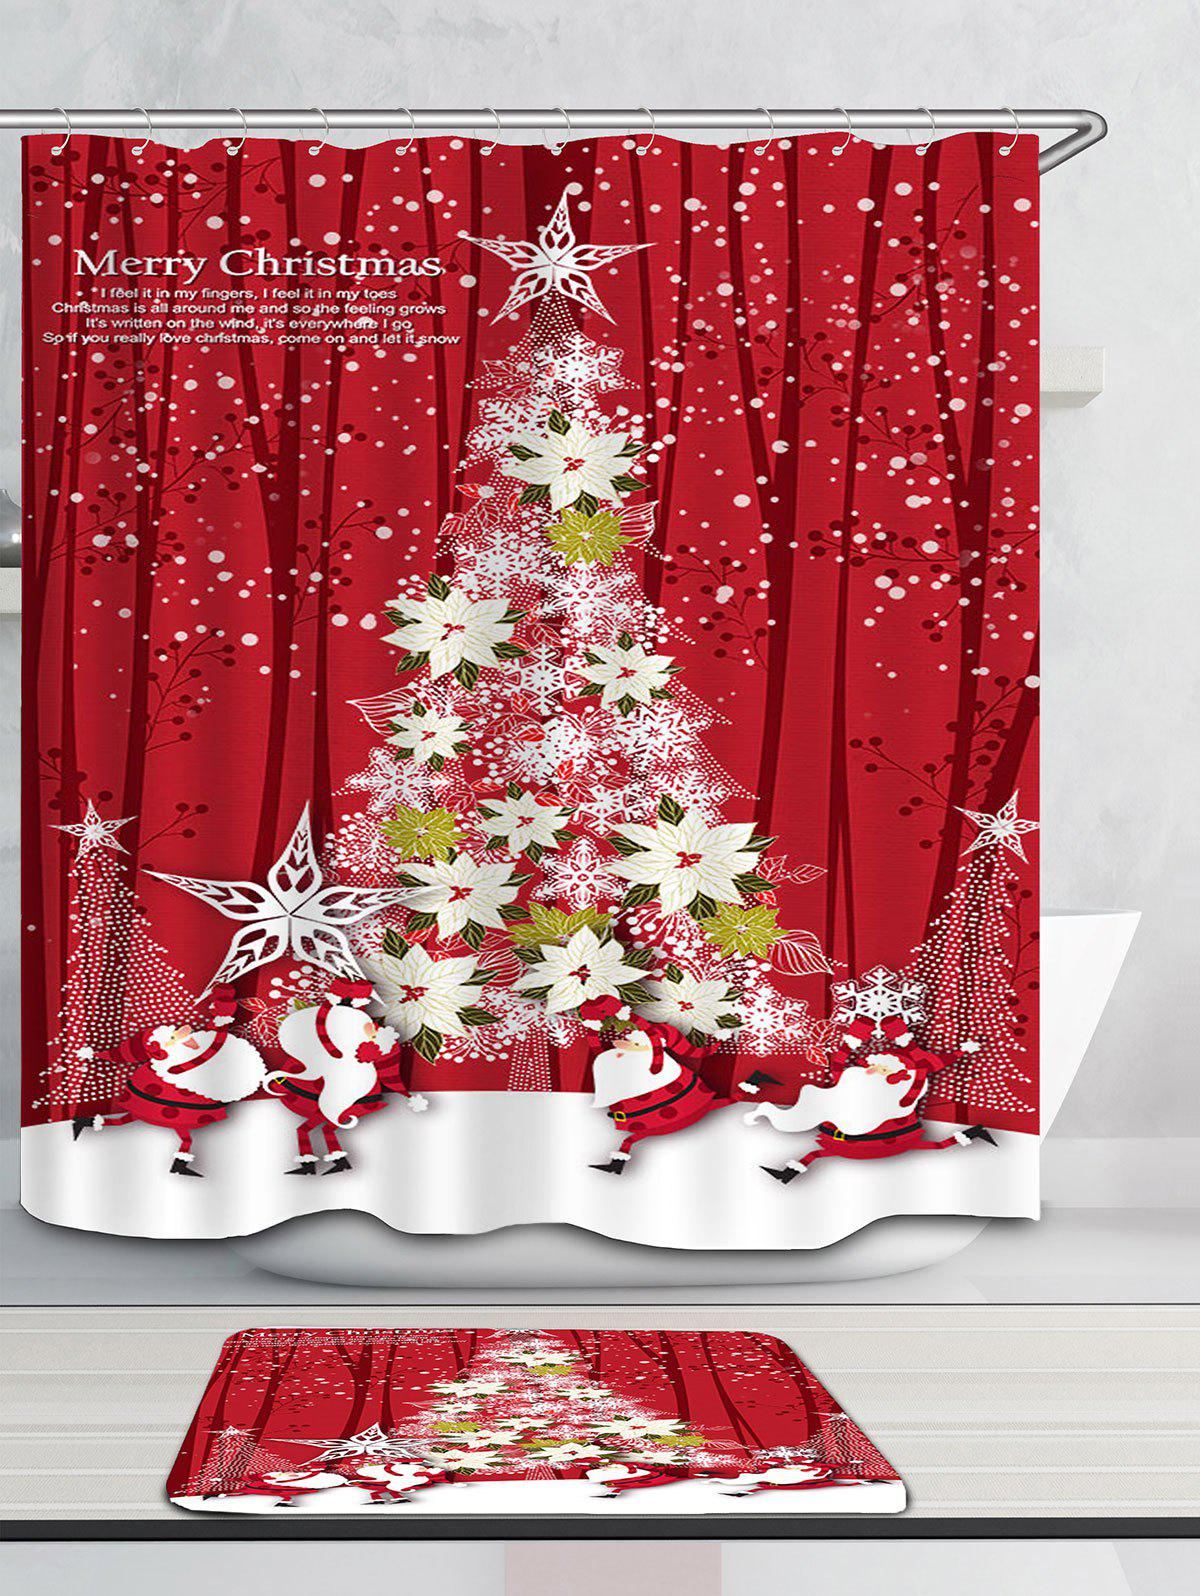 Flower Christmas Tree Printed Waterproof Shower Curtain - RED W71 INCH * L79 INCH